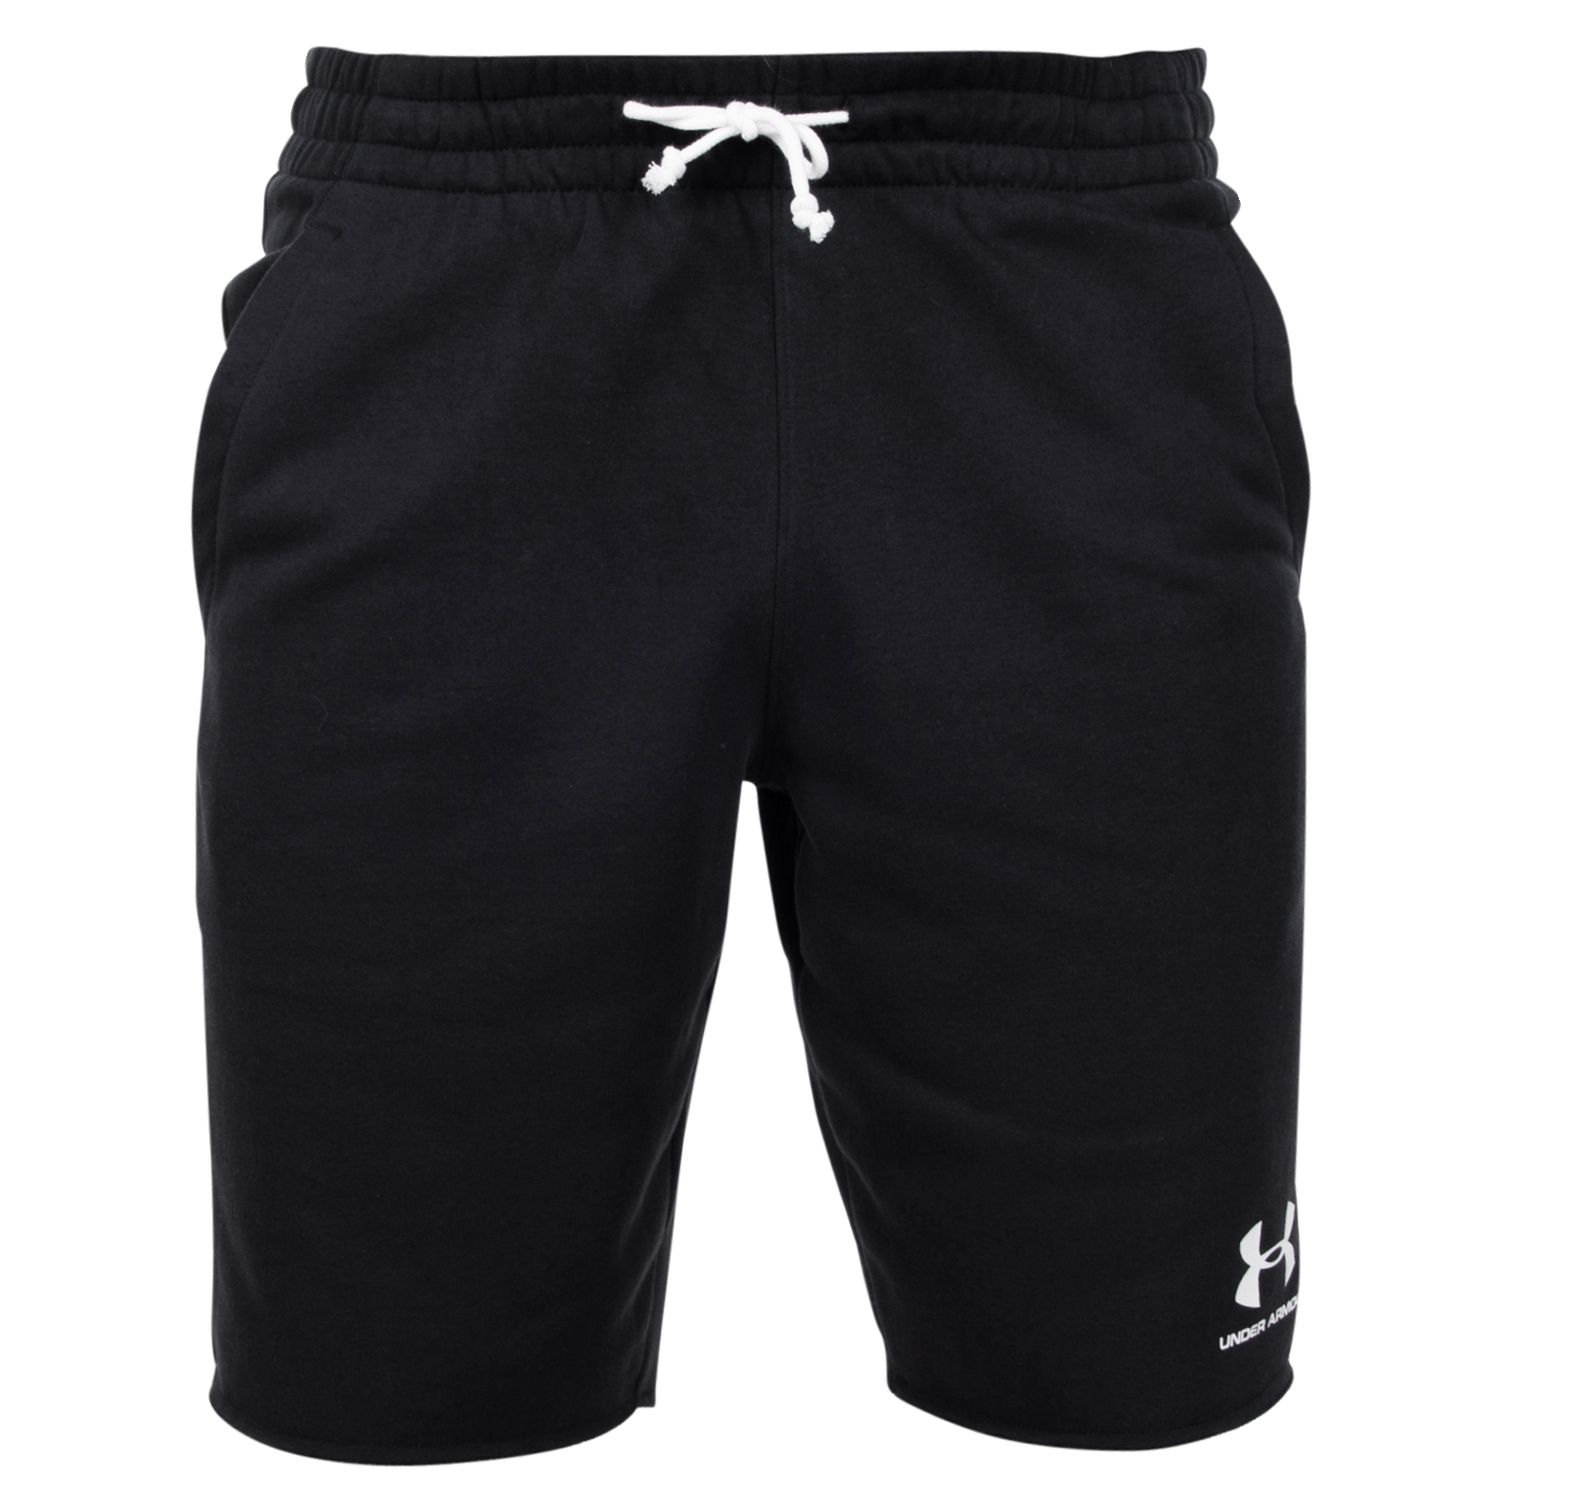 Sportstyle Terry Short, Black, M,  Under Armour